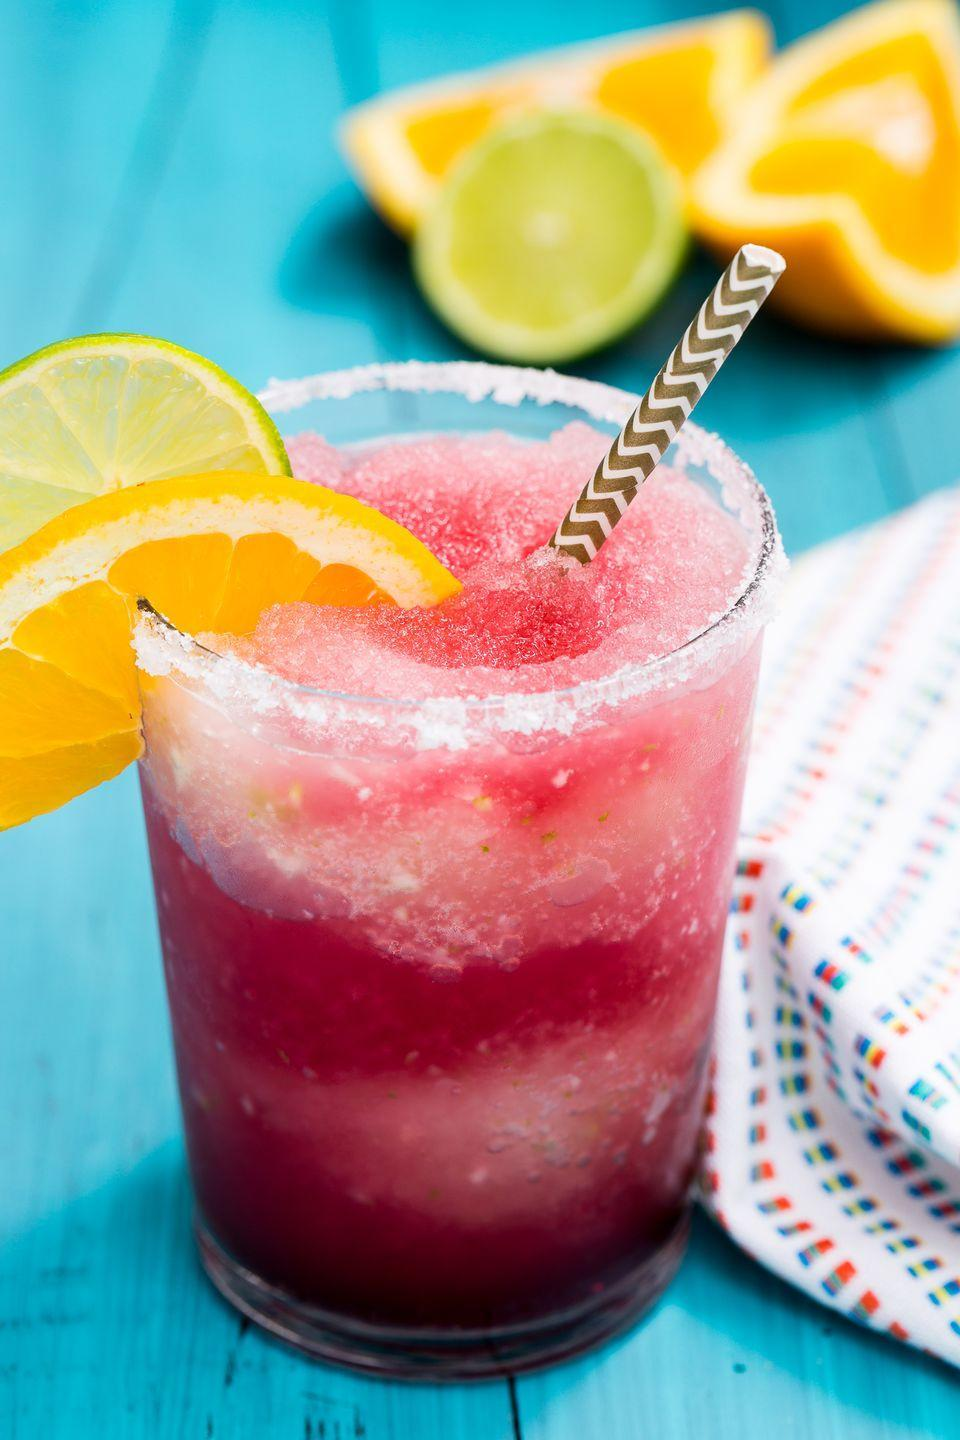 """<p>This boozy slushie is a must for your next girls night. </p><p>Get the recipe from <a href=""""https://www.delish.com/cooking/recipe-ideas/recipes/a47215/frozen-sangria-margarita-recipe/"""" rel=""""nofollow noopener"""" target=""""_blank"""" data-ylk=""""slk:Delish"""" class=""""link rapid-noclick-resp"""">Delish</a>.</p>"""